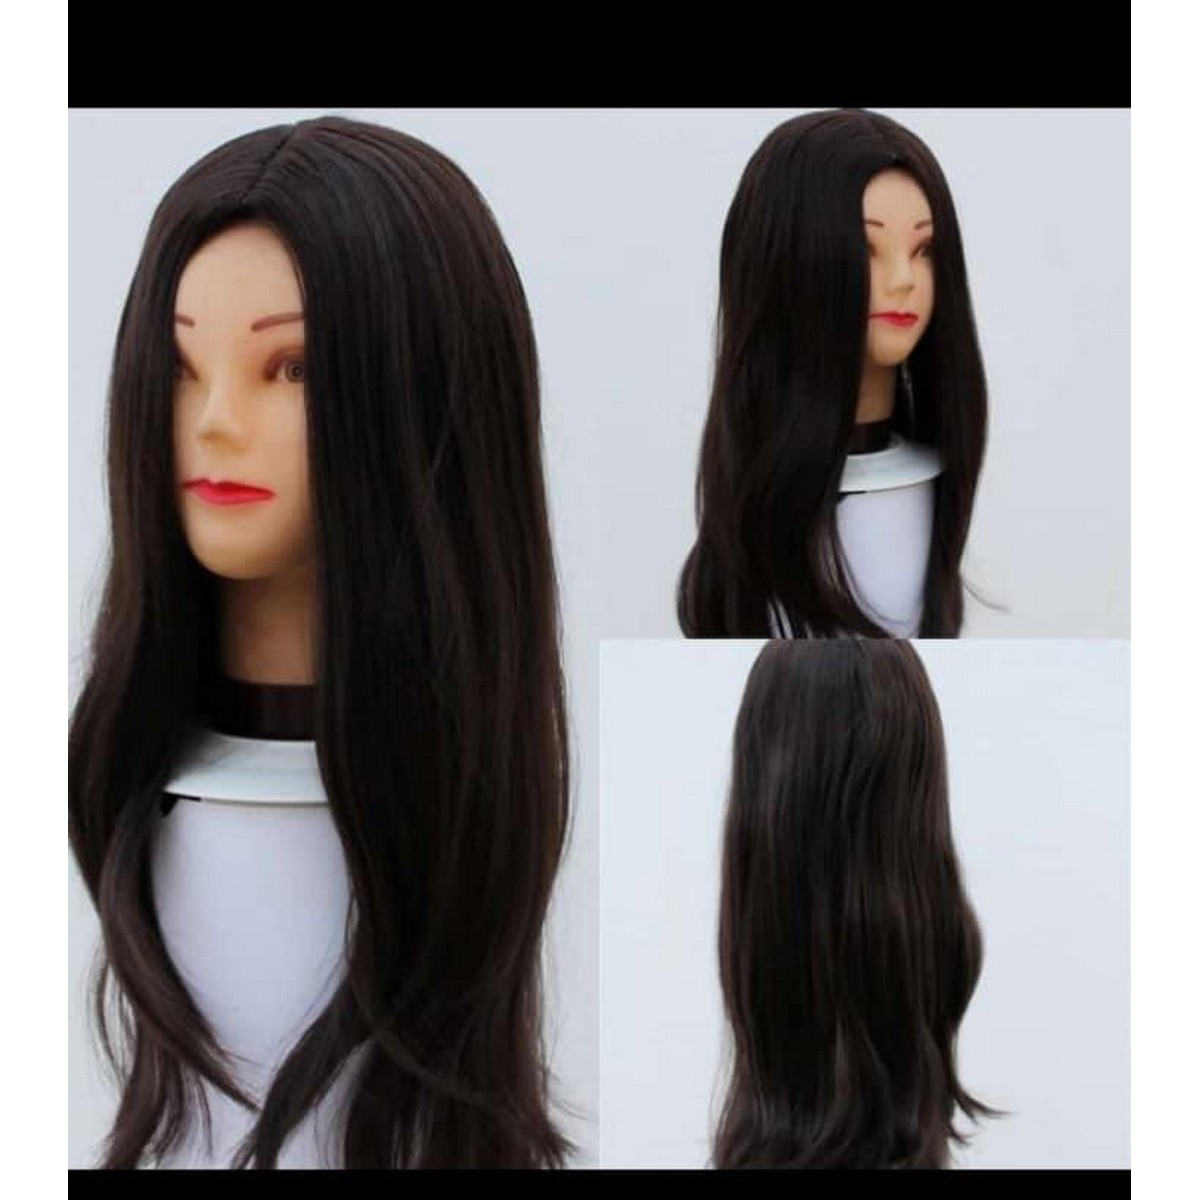 New full head wig for women's-Natural brown color